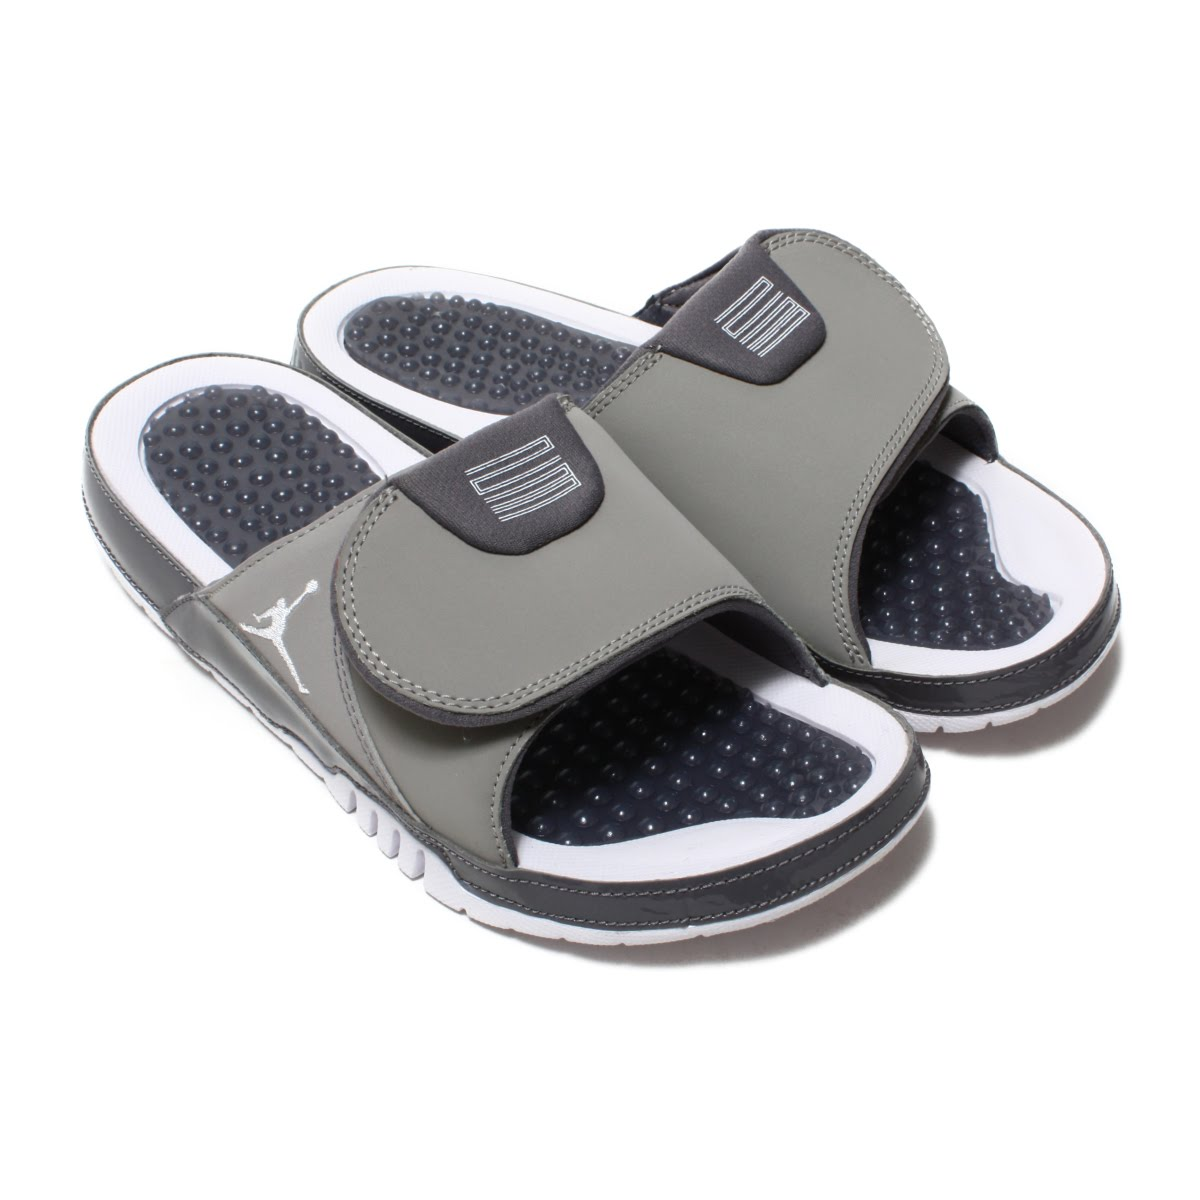 18dda30861bf34 Slide sandals for relieving fatigue after the very soft game. The design  which lets you image AJ 11 which is Aiko Nic. The mid sole which does not  slip is ...